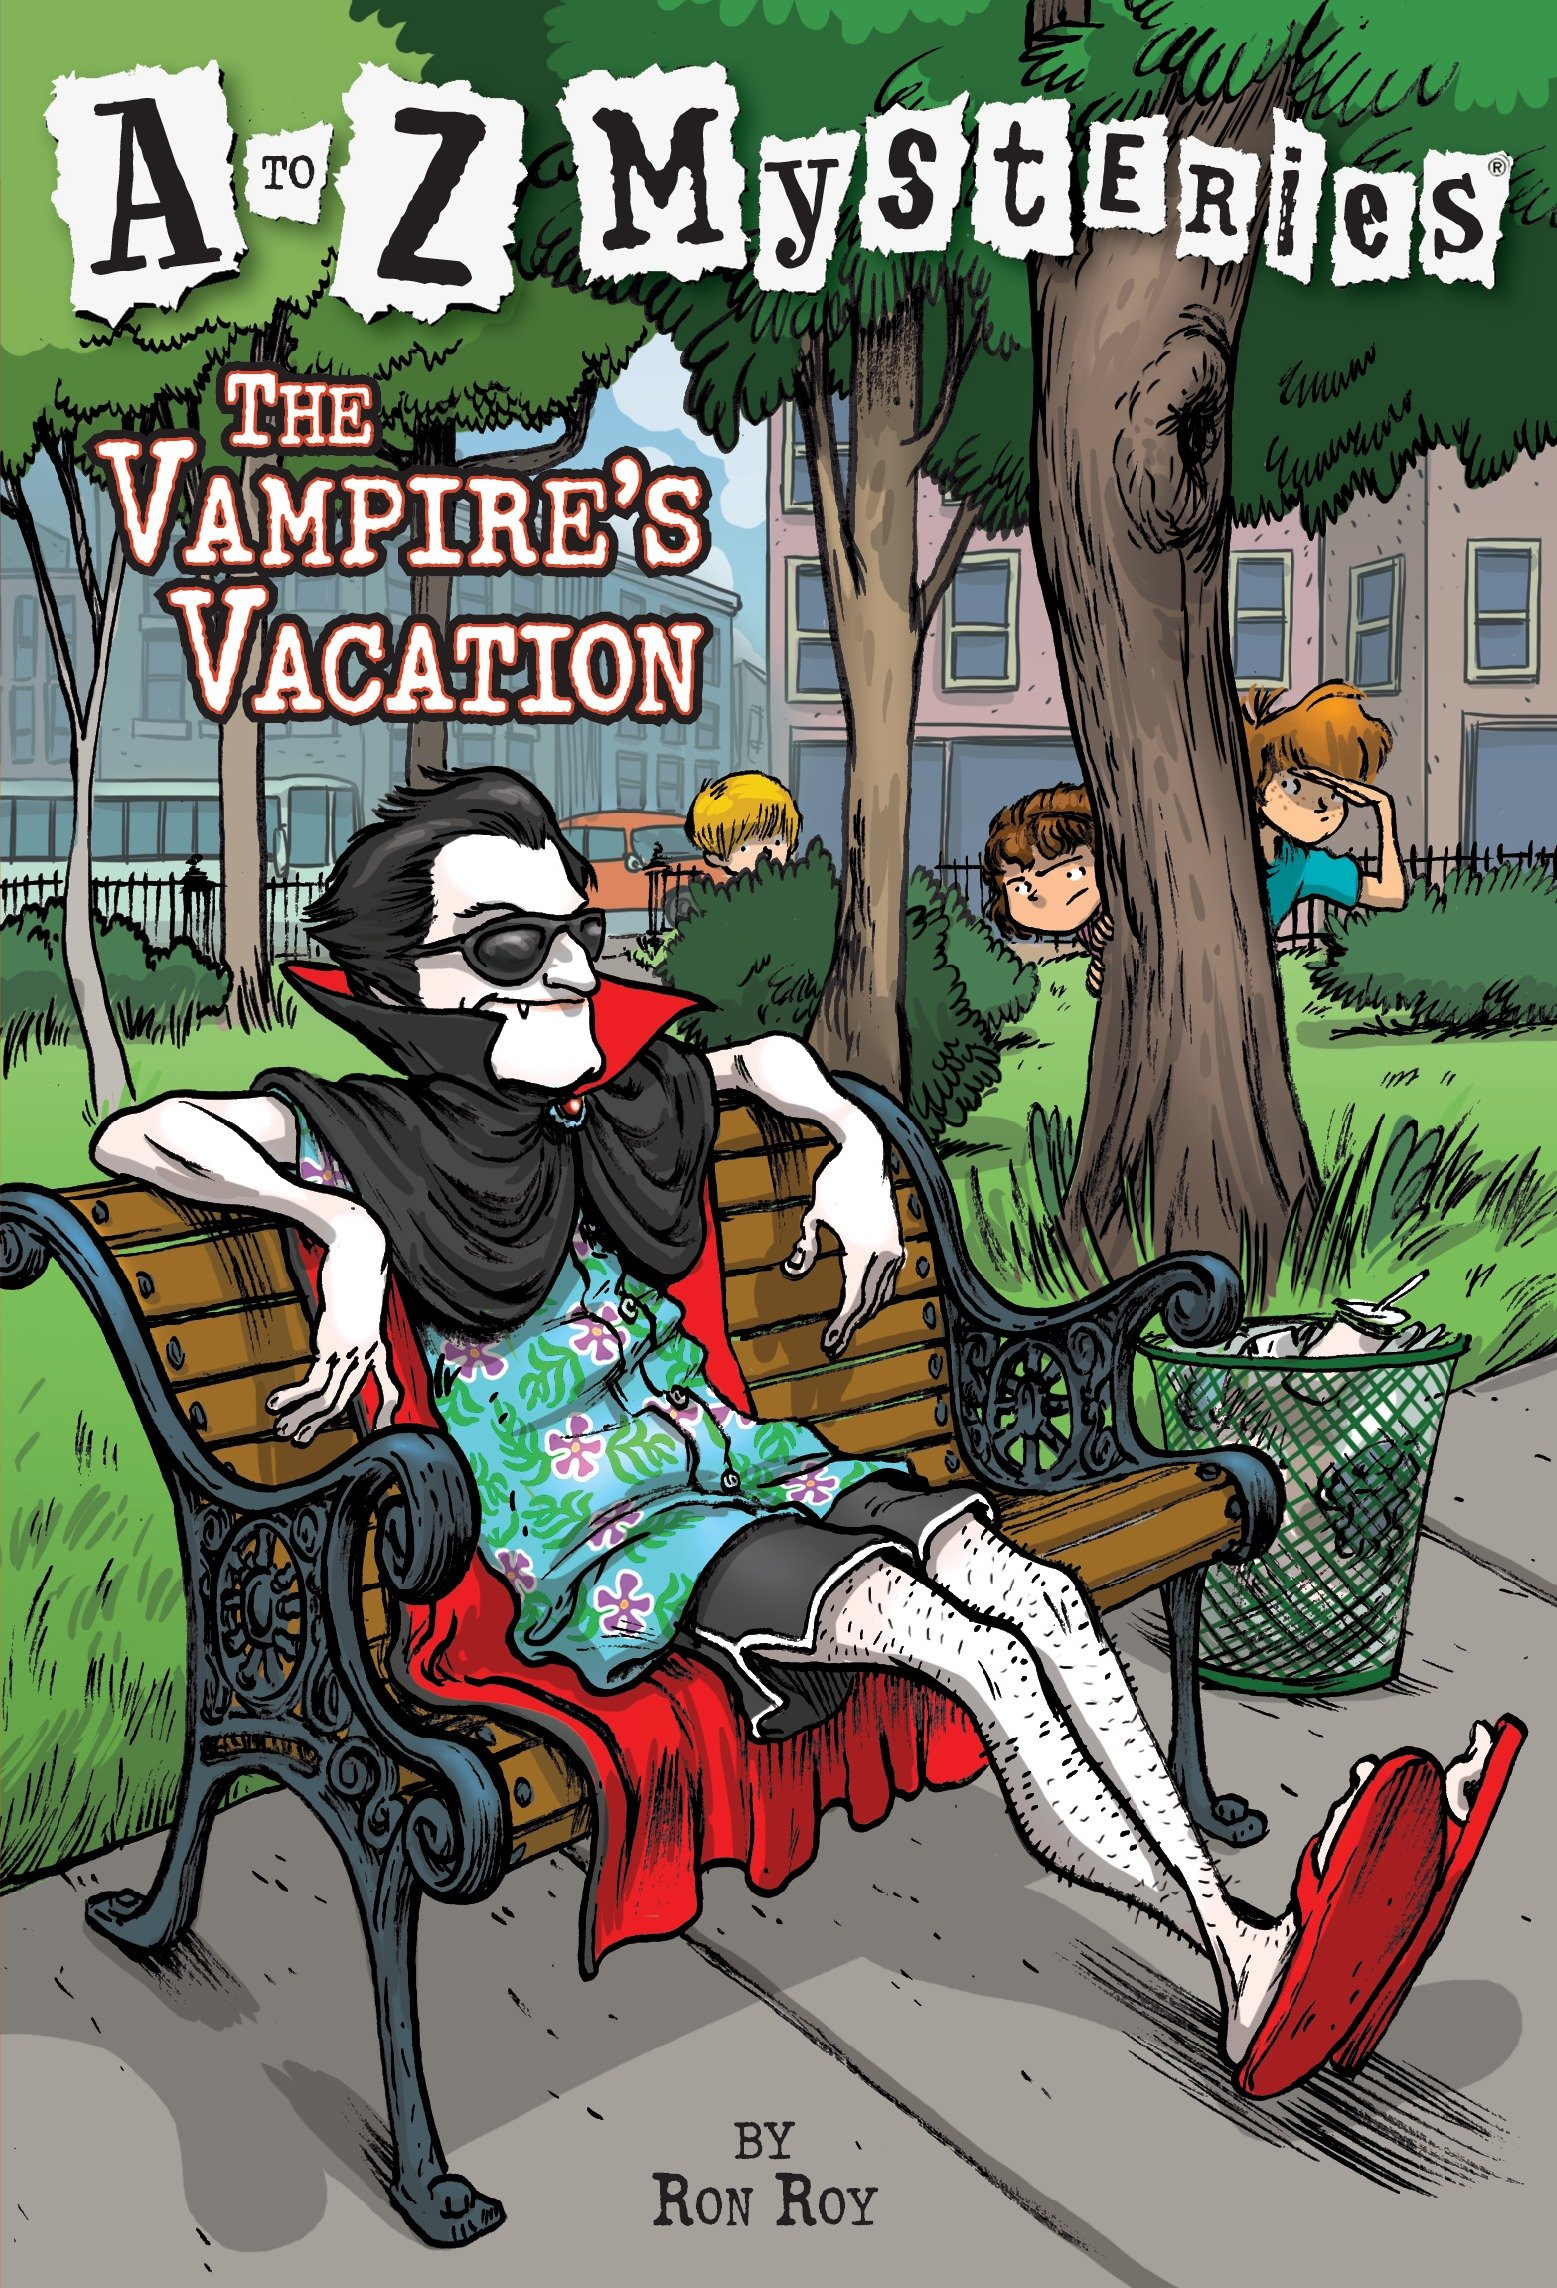 The Vampire's Vacation cover image